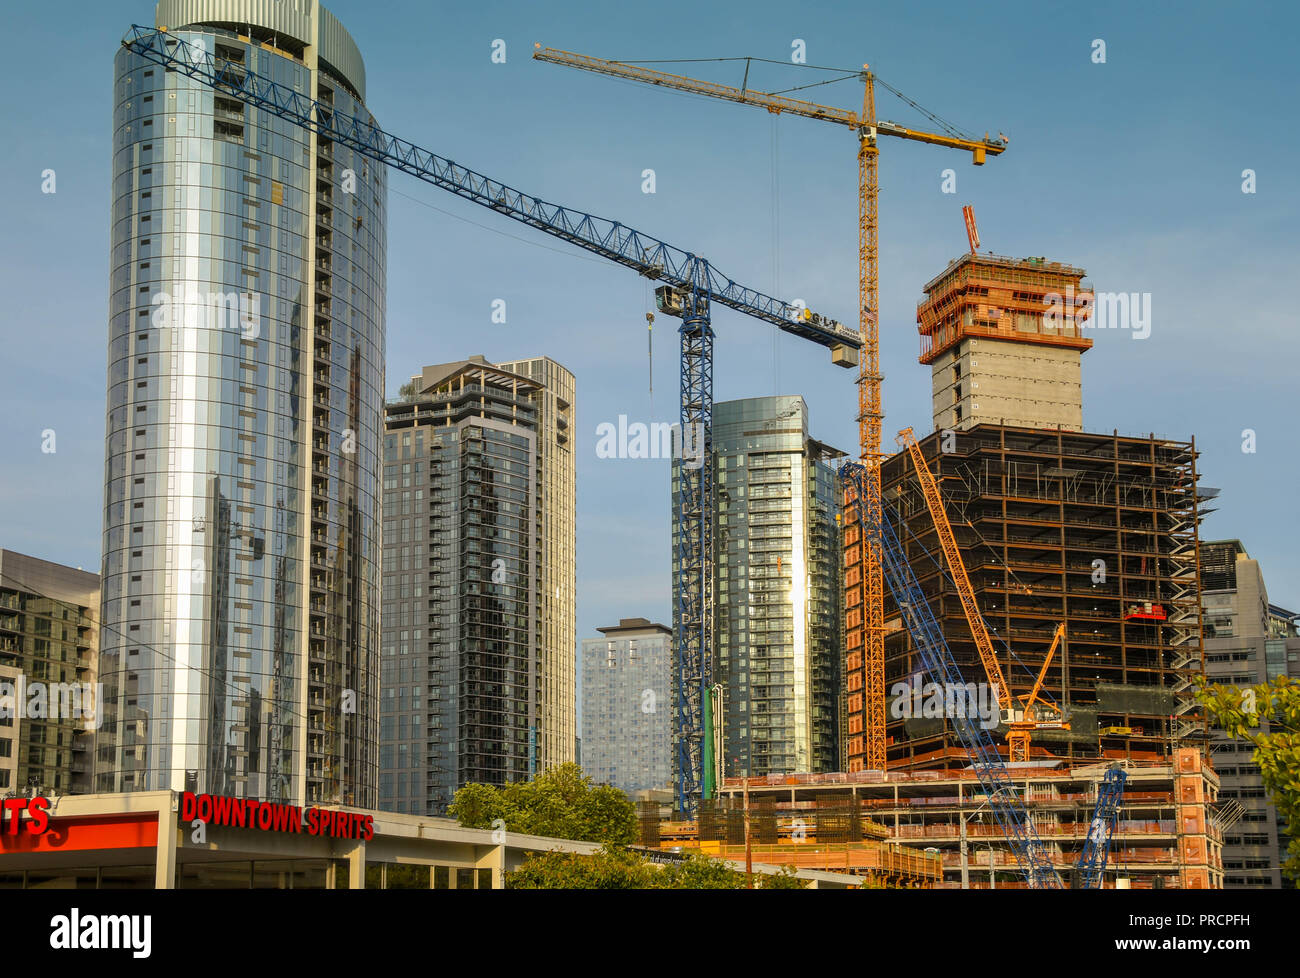 SEATTLE, WA, USA, - JUNE 2018: Tower cranes working on a major new development in downtown Seattle. Stock Photo